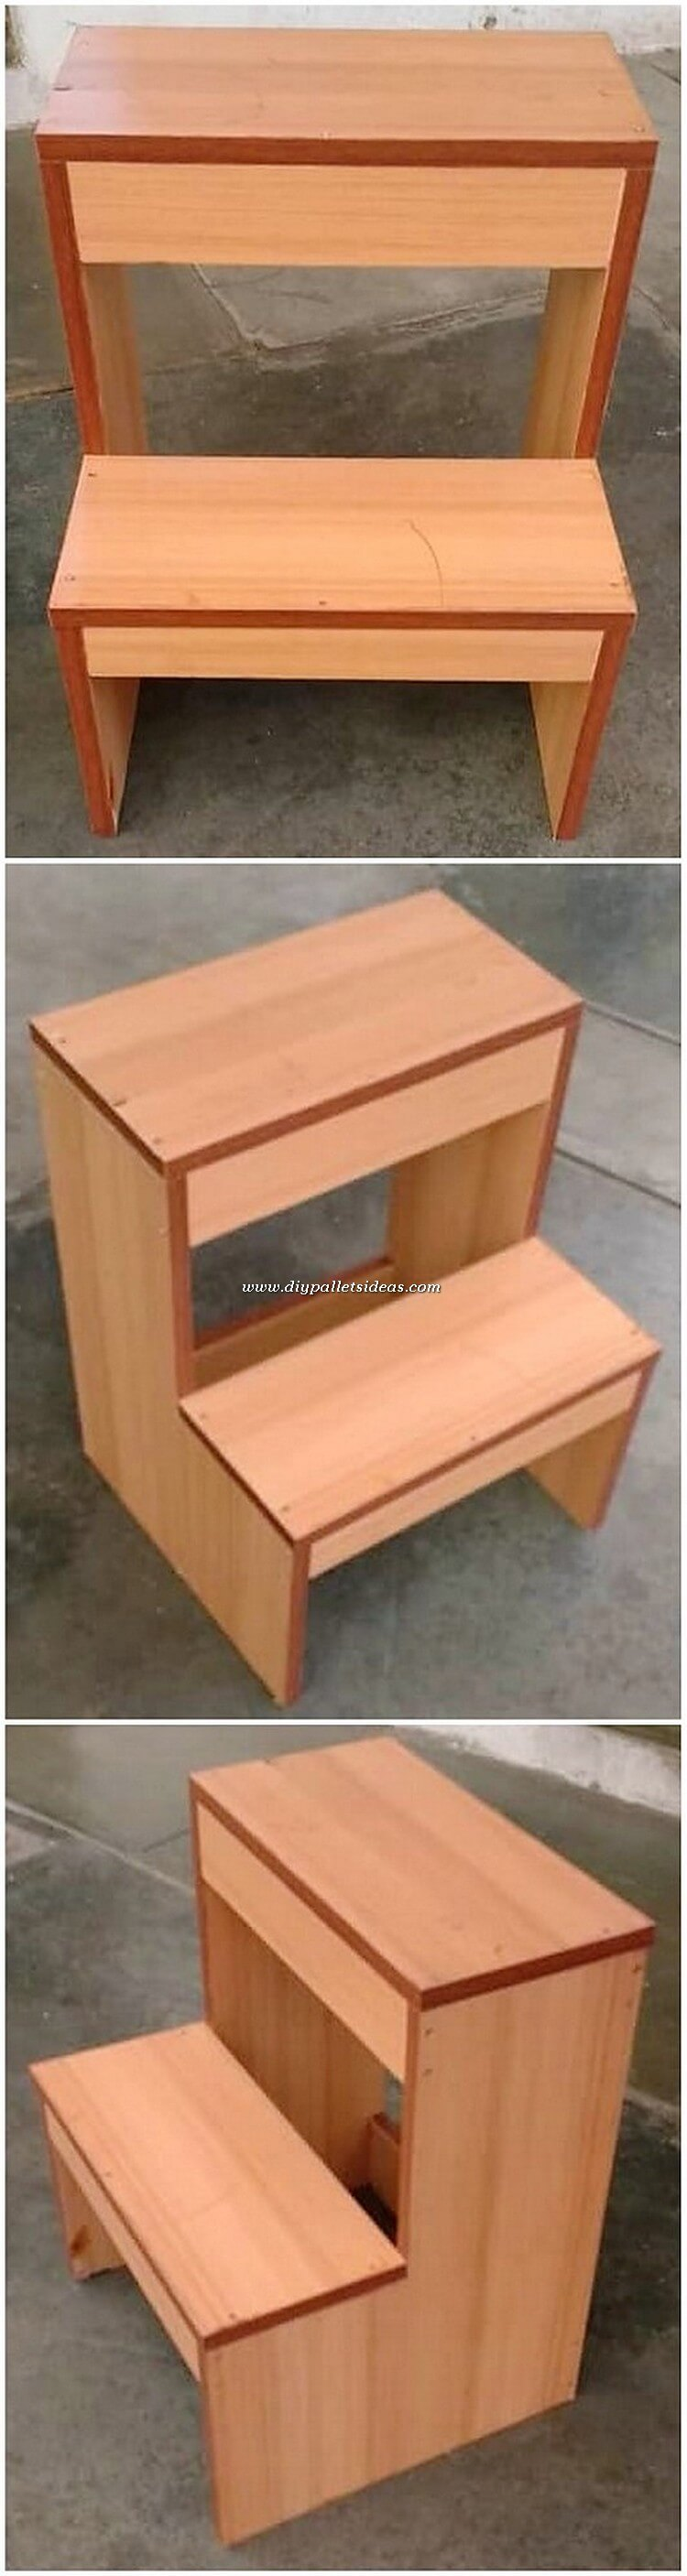 Pallet Seat and Bench for Kids